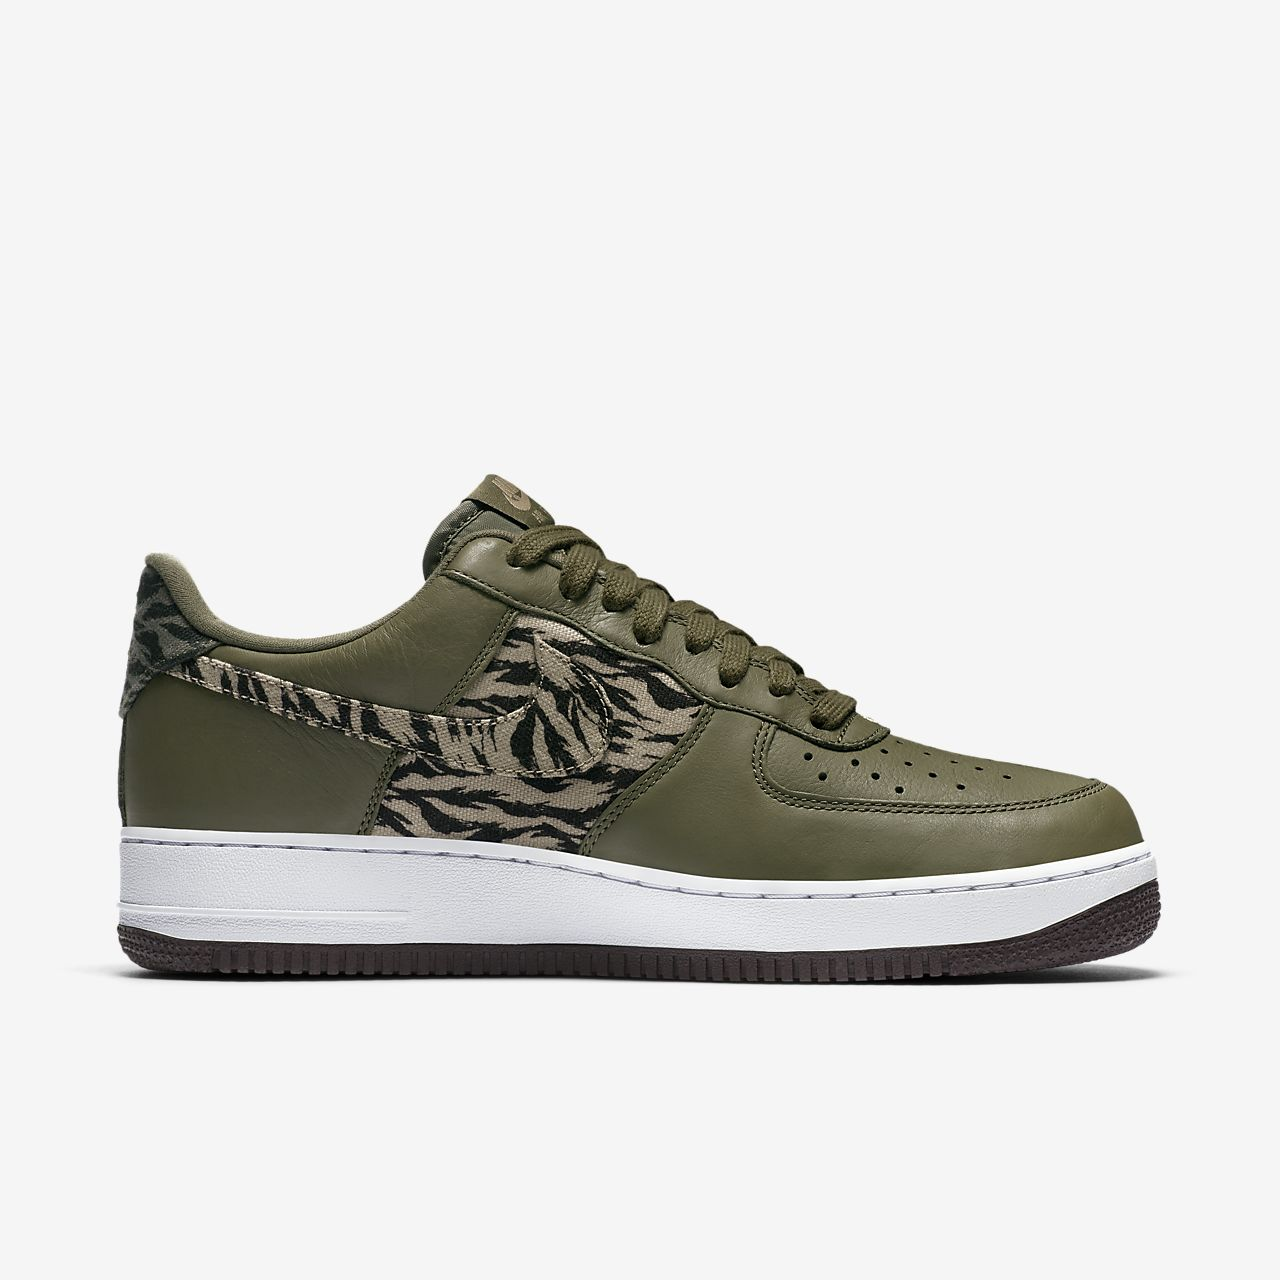 Zapatillas de baloncesto Nike Air Force 1 '07 LV8 color caqui / negro para hombre 11 Estados Unidos 3u9E6s